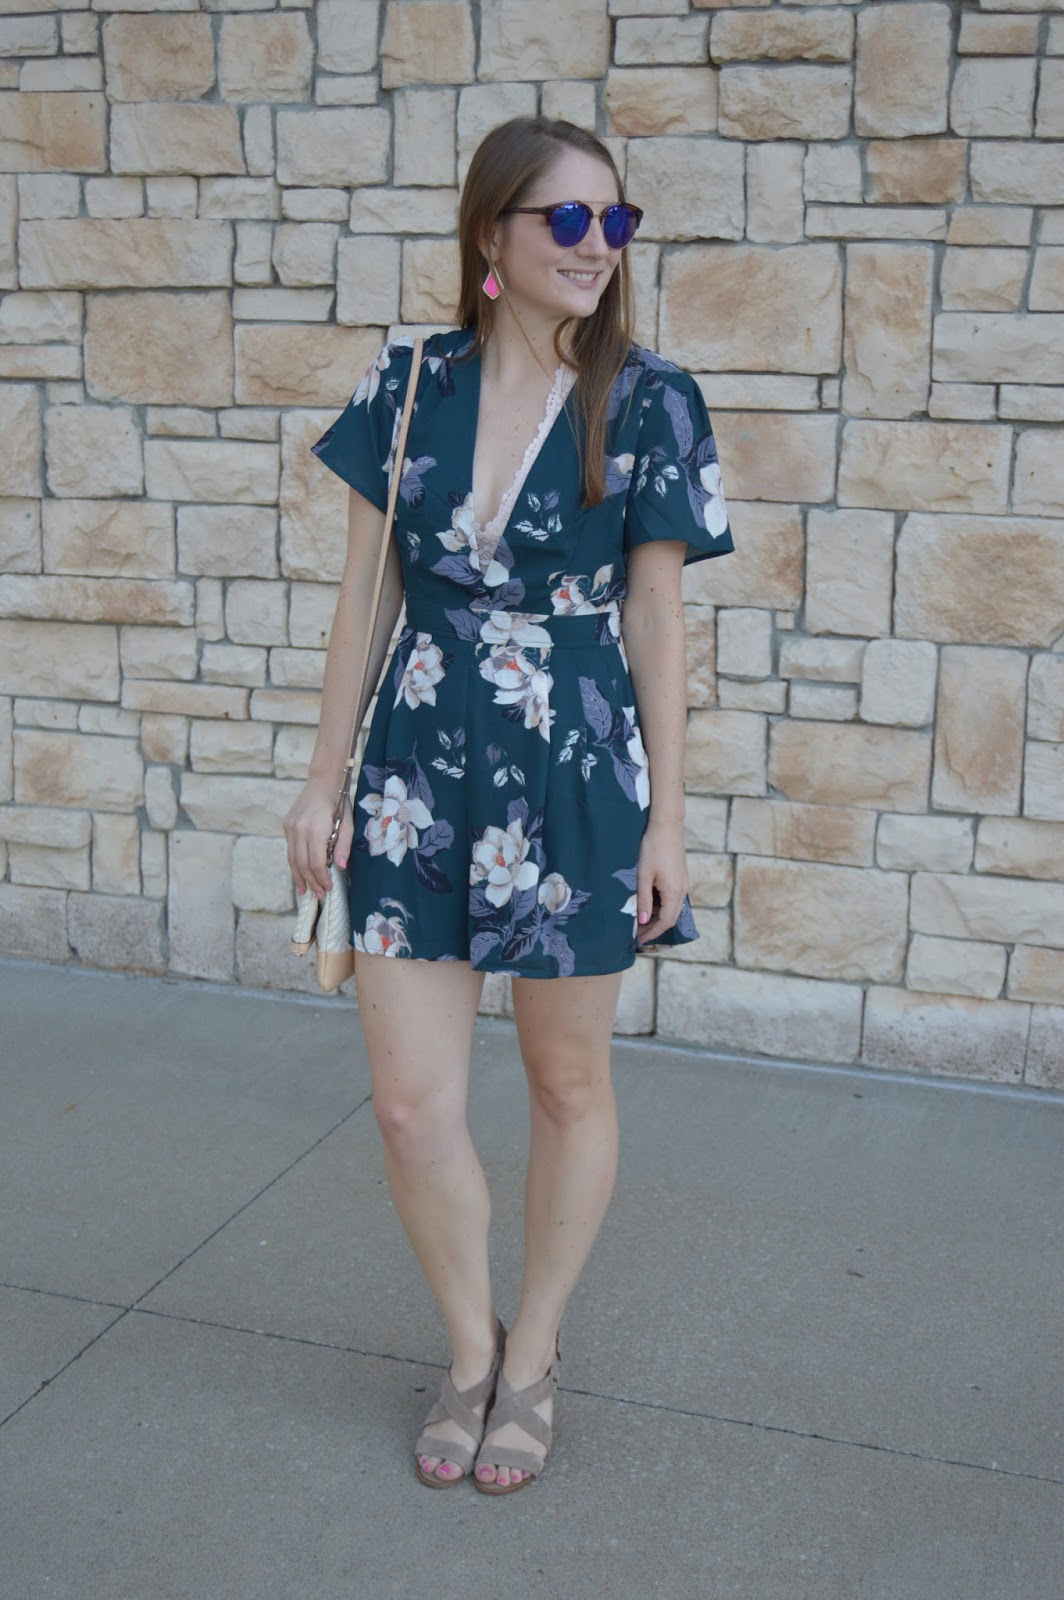 date night outfits for summer | romper with a bralette | teal and blush outfit ideas | retro sunglasses | mirrored sunglasses | summer outfit ideas | summer lookbook | summer street style | a memory of us |